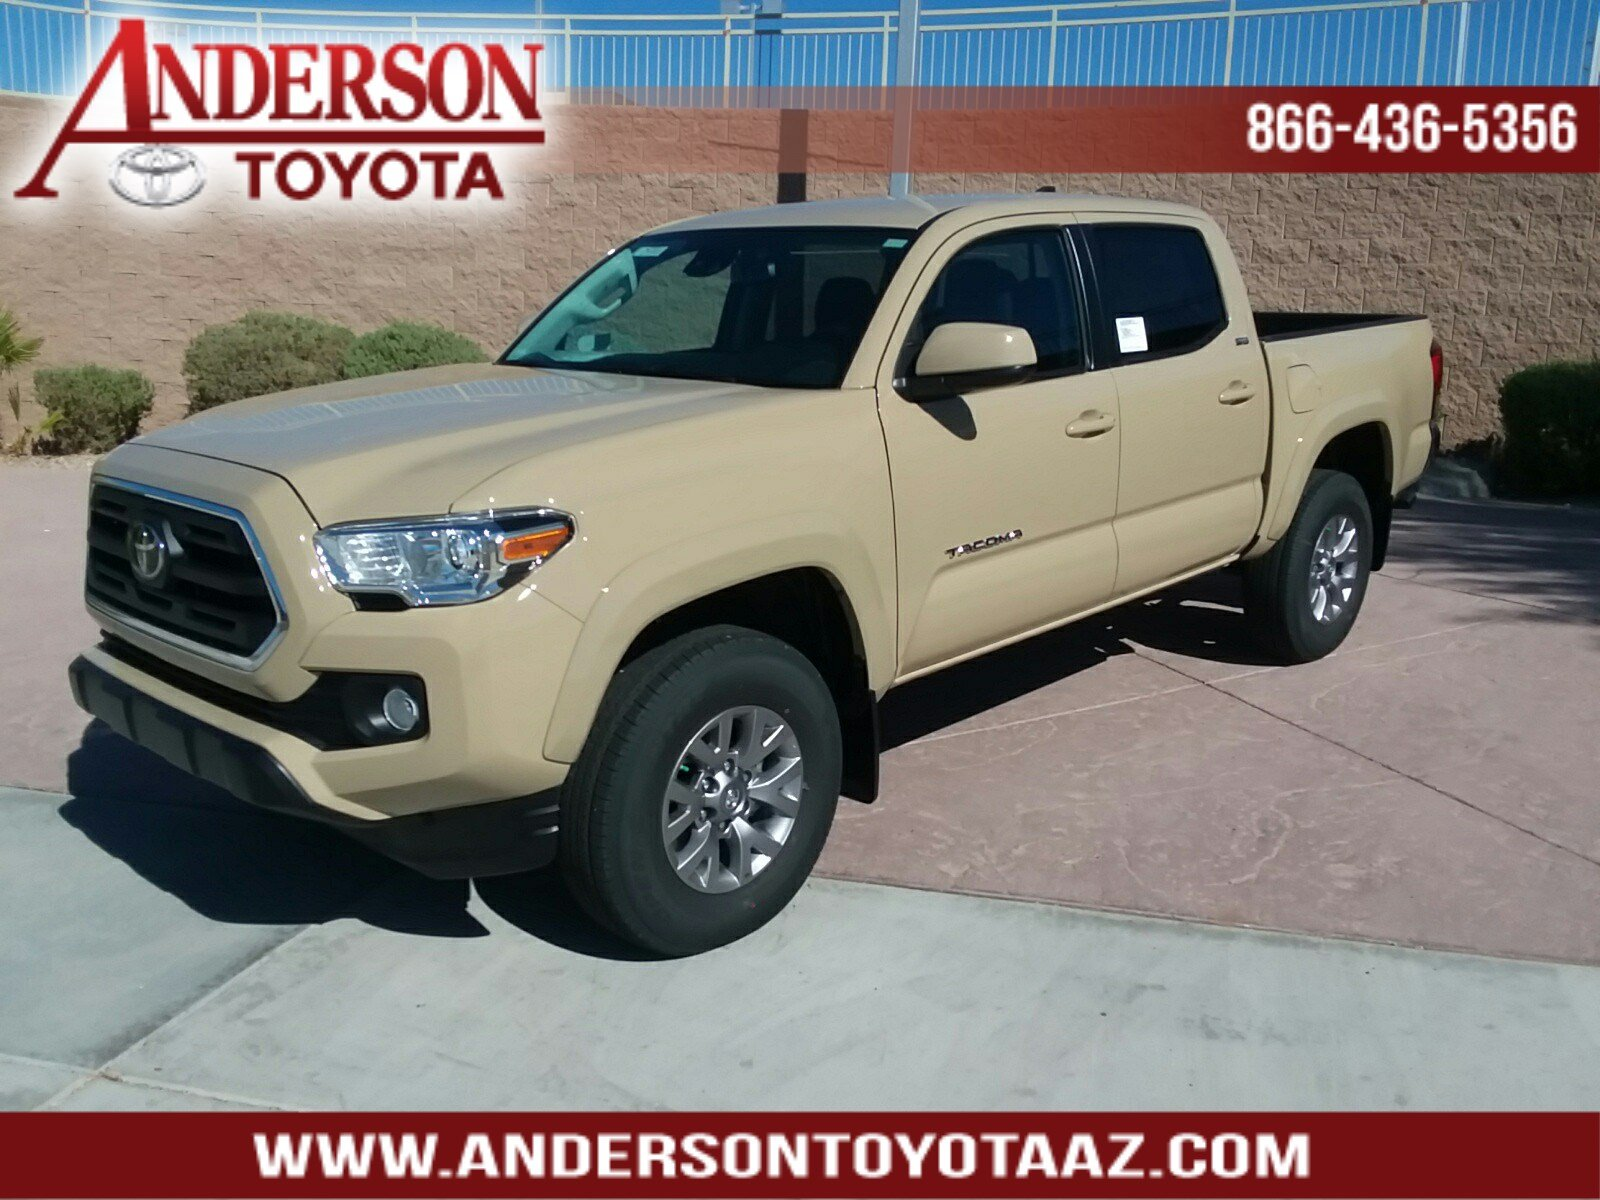 2005 Tacoma Fuel Filter New 2019 Toyota Sr5 4d Double Cab In 25701 Anderson Auto Group